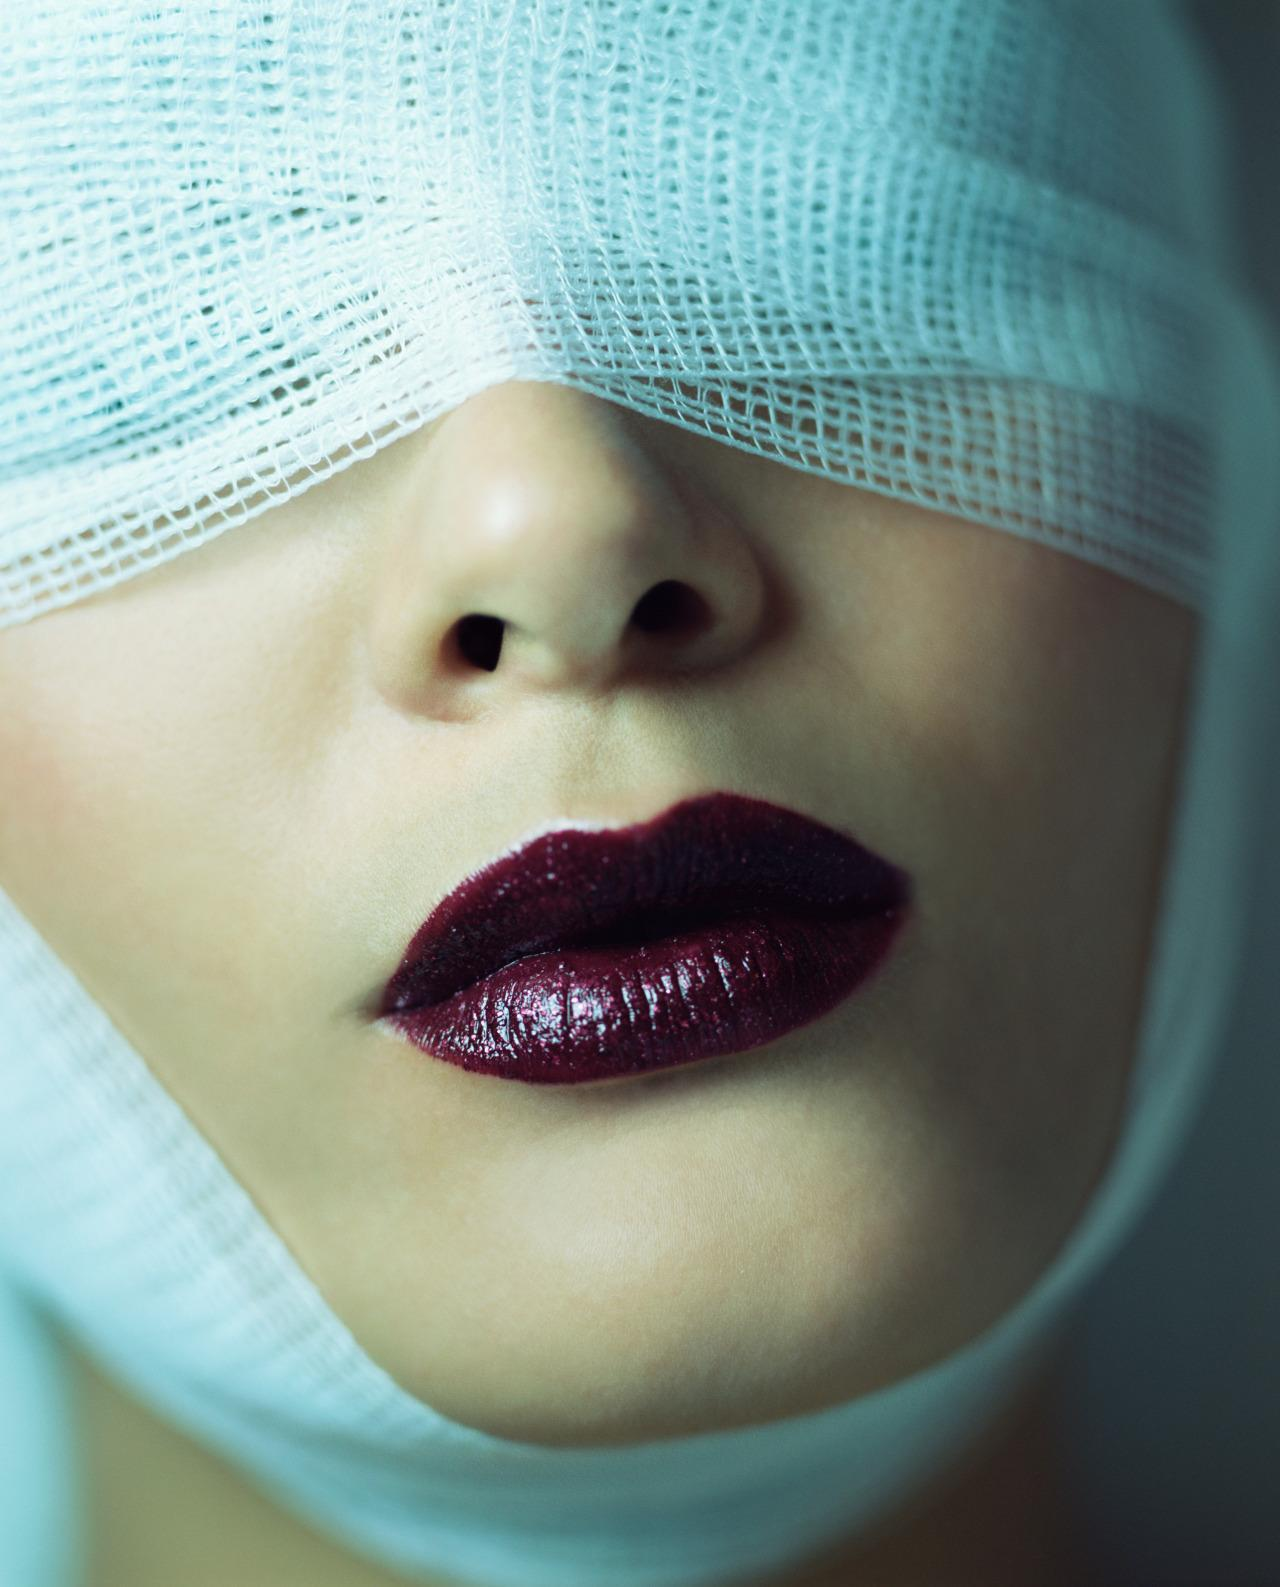 effect of plastic surgery on the Plastic surgery can have some side effects the anesthesia may cause temporary side effects like nausea and dizziness but the surgery itself may cause scarring, bleeding, pain, swelling, and abnormal clotting.